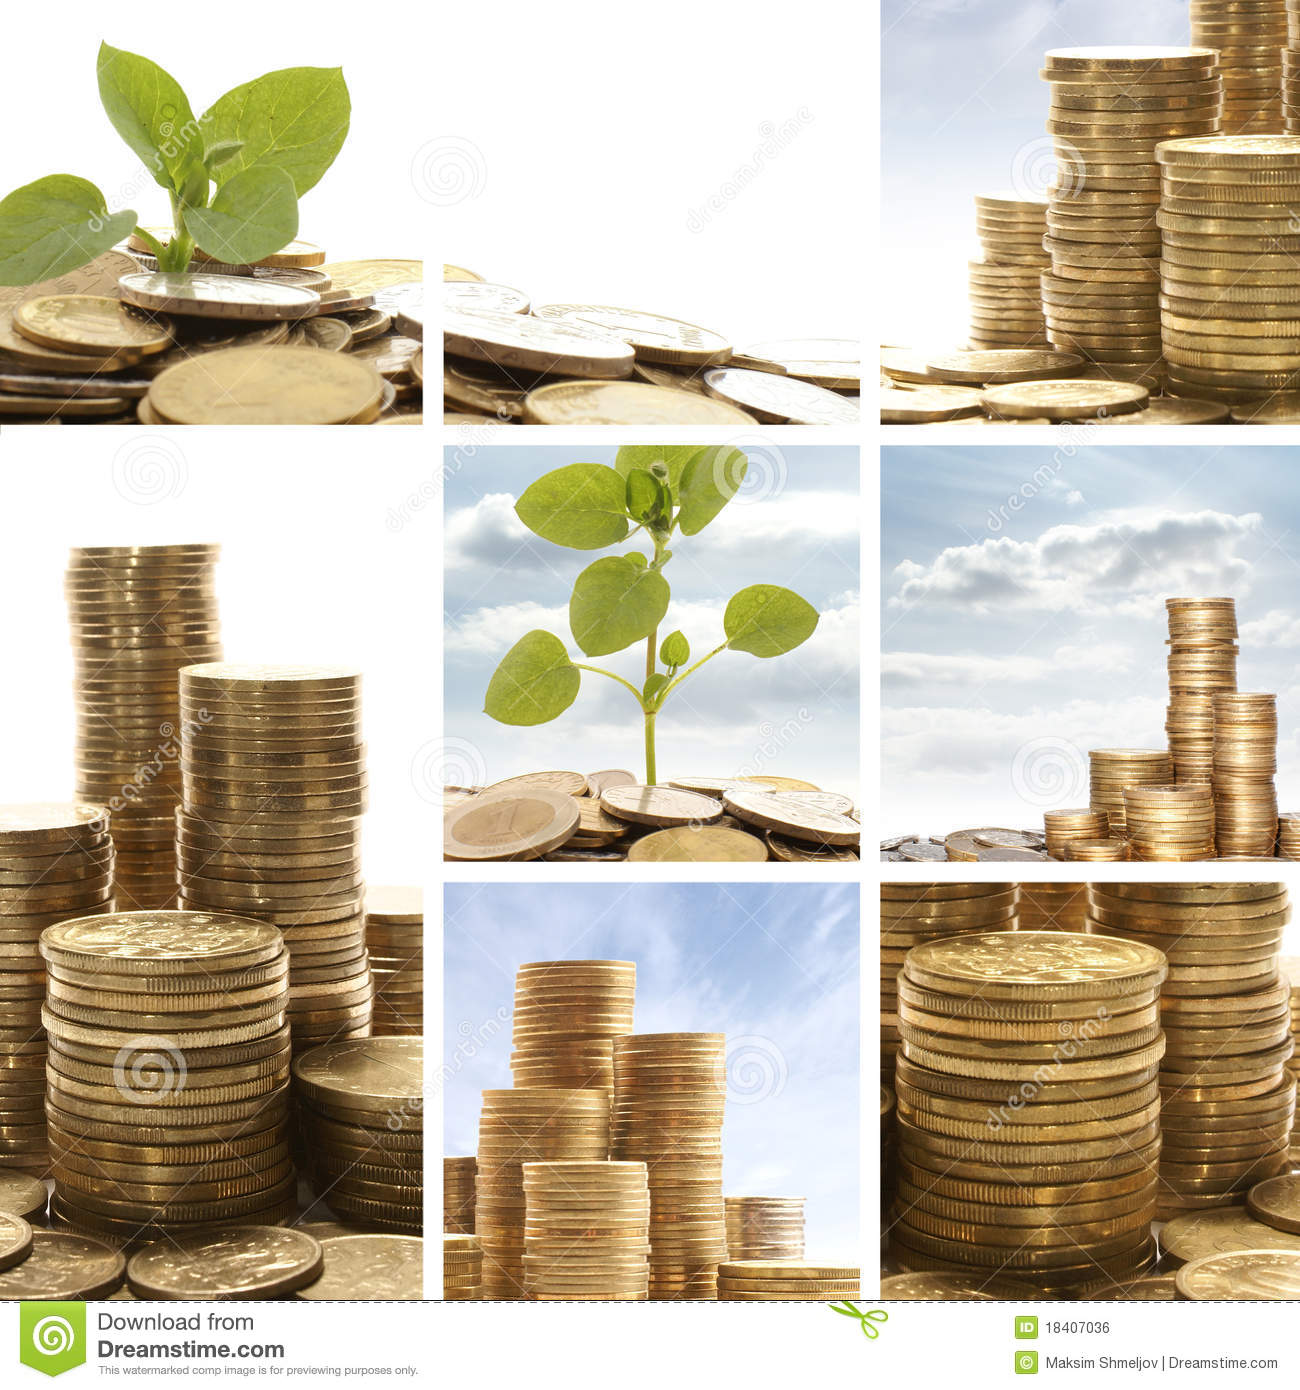 A Collage Of Golden Coins And Green Leaves Stock Photo Image Of Currency Green 18407036